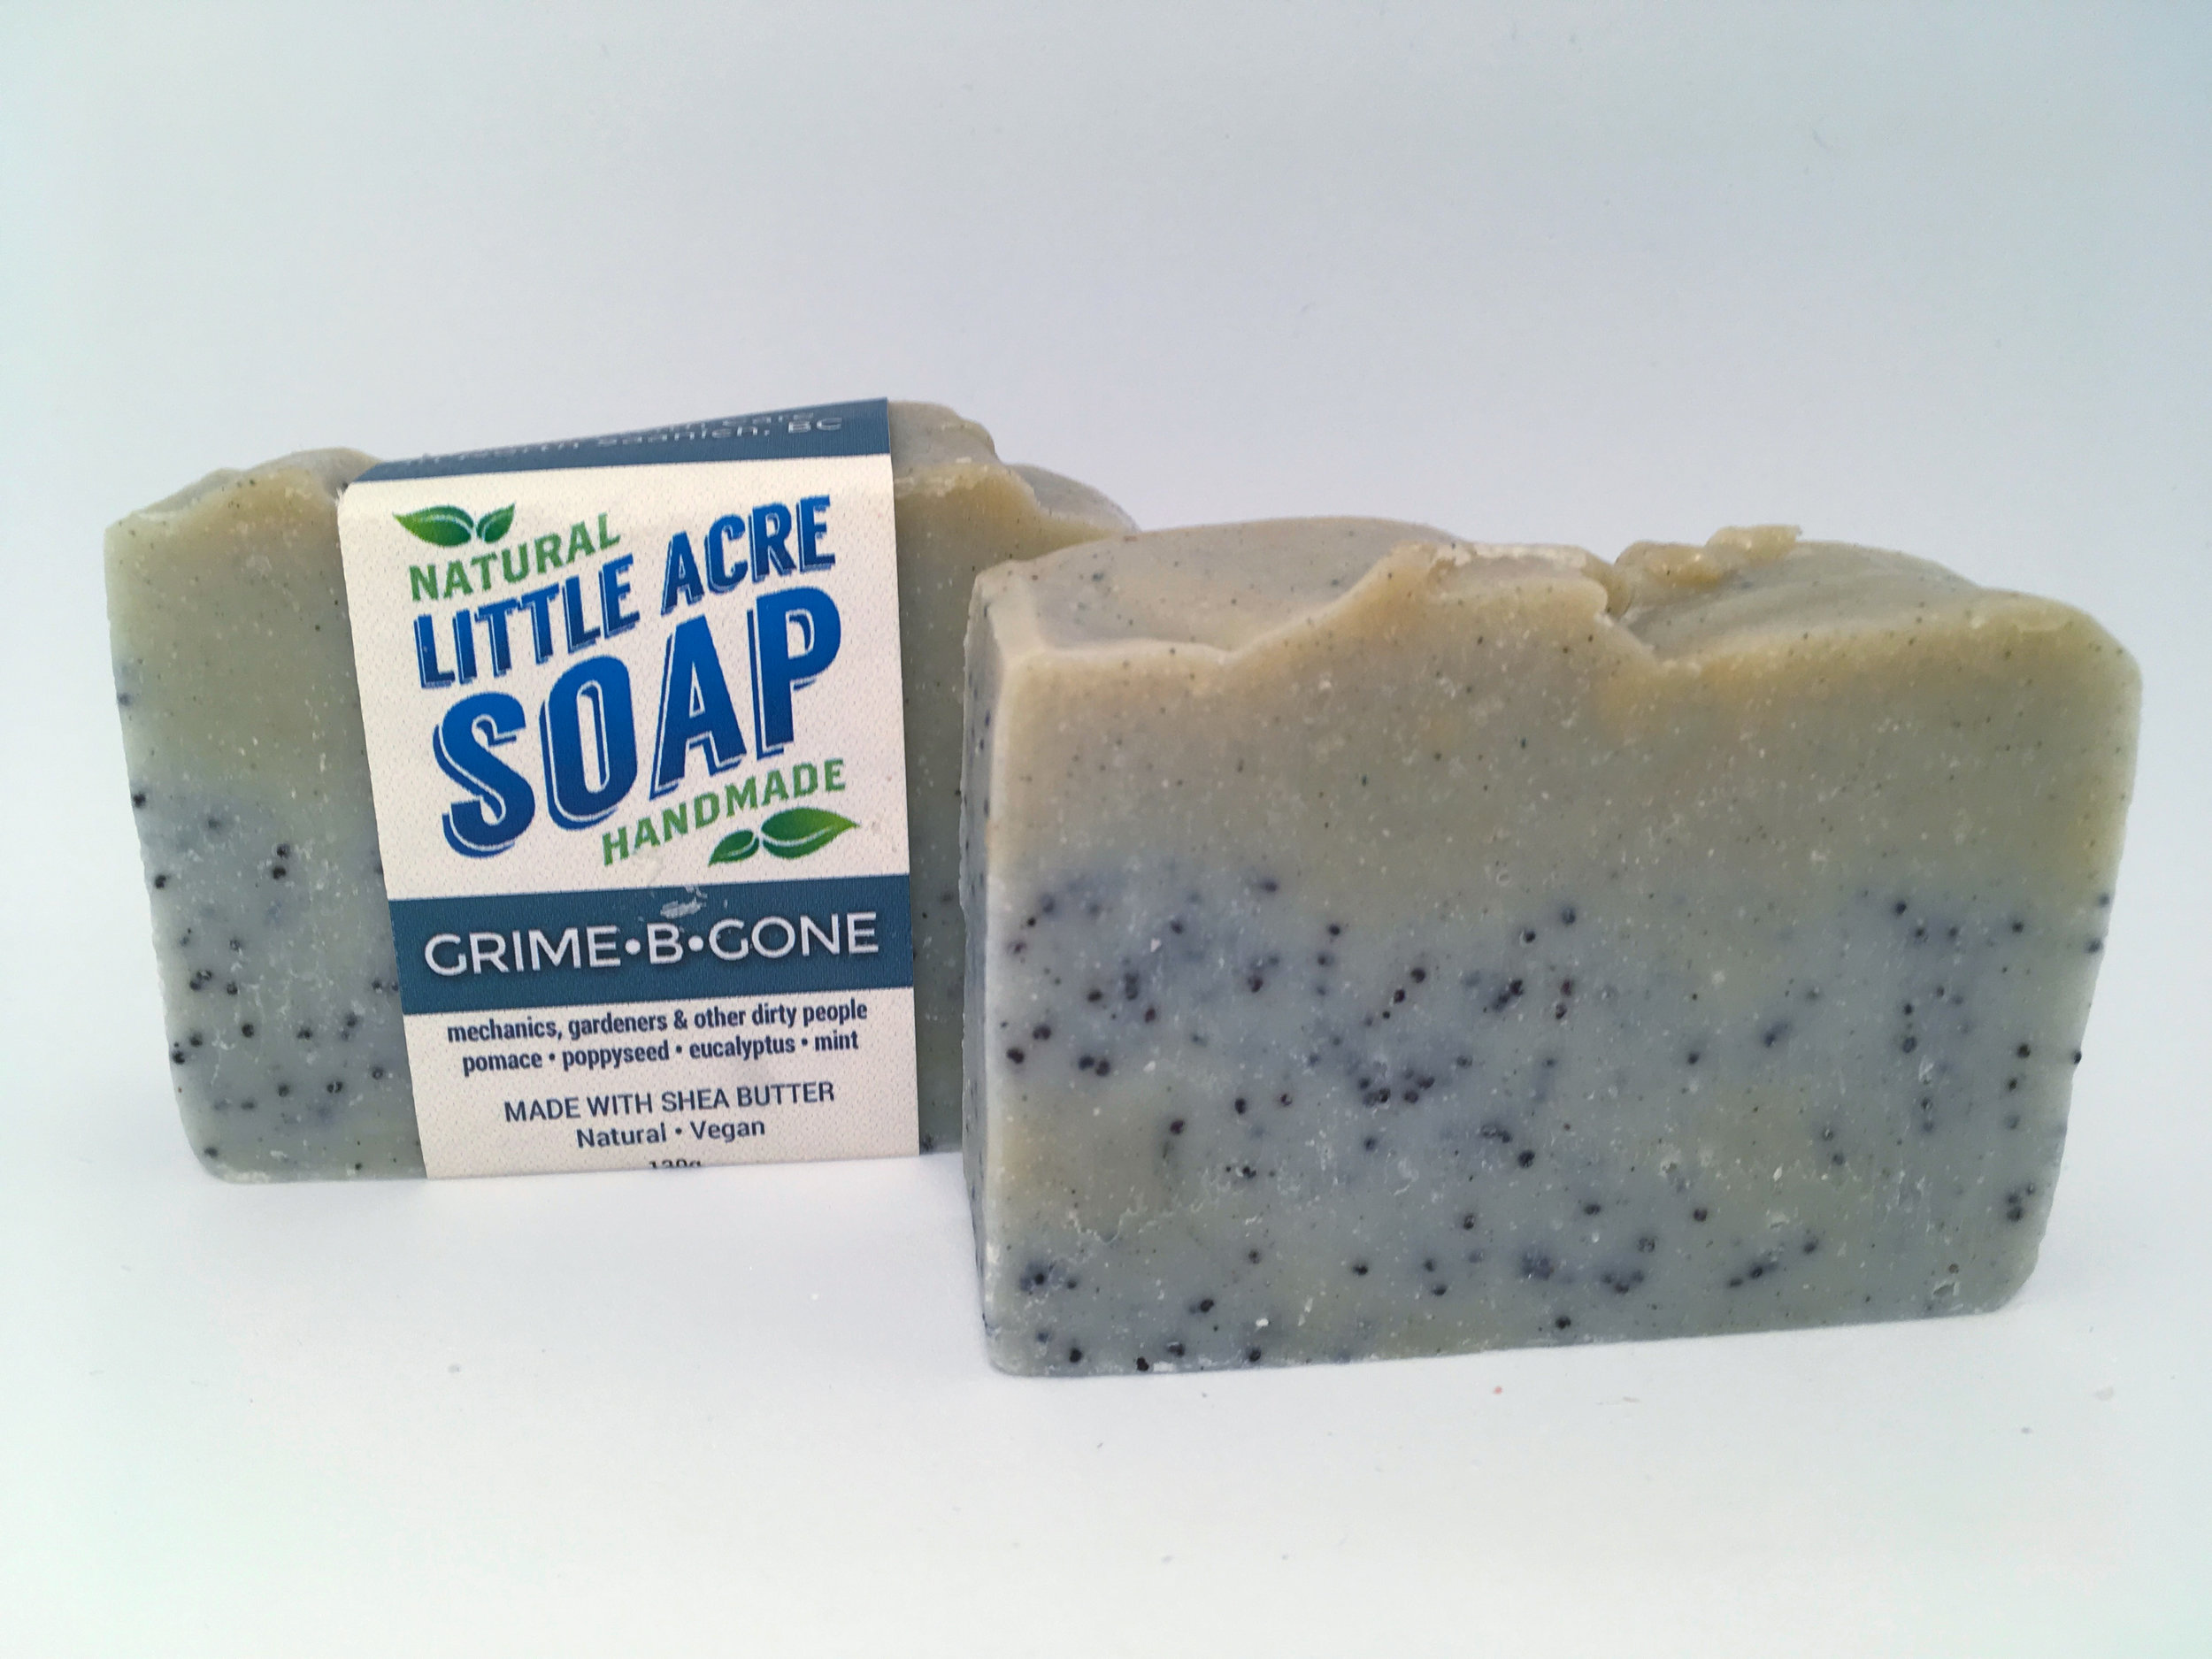 GRIME-B-GONE  Calling all dirty people! This bar is packed with ground pumice stone to help chase away deeply embedded dirt and grime. Pleasantly scented with Eucalyptus and Peppermint, which can also help heal small knicks and cuts.